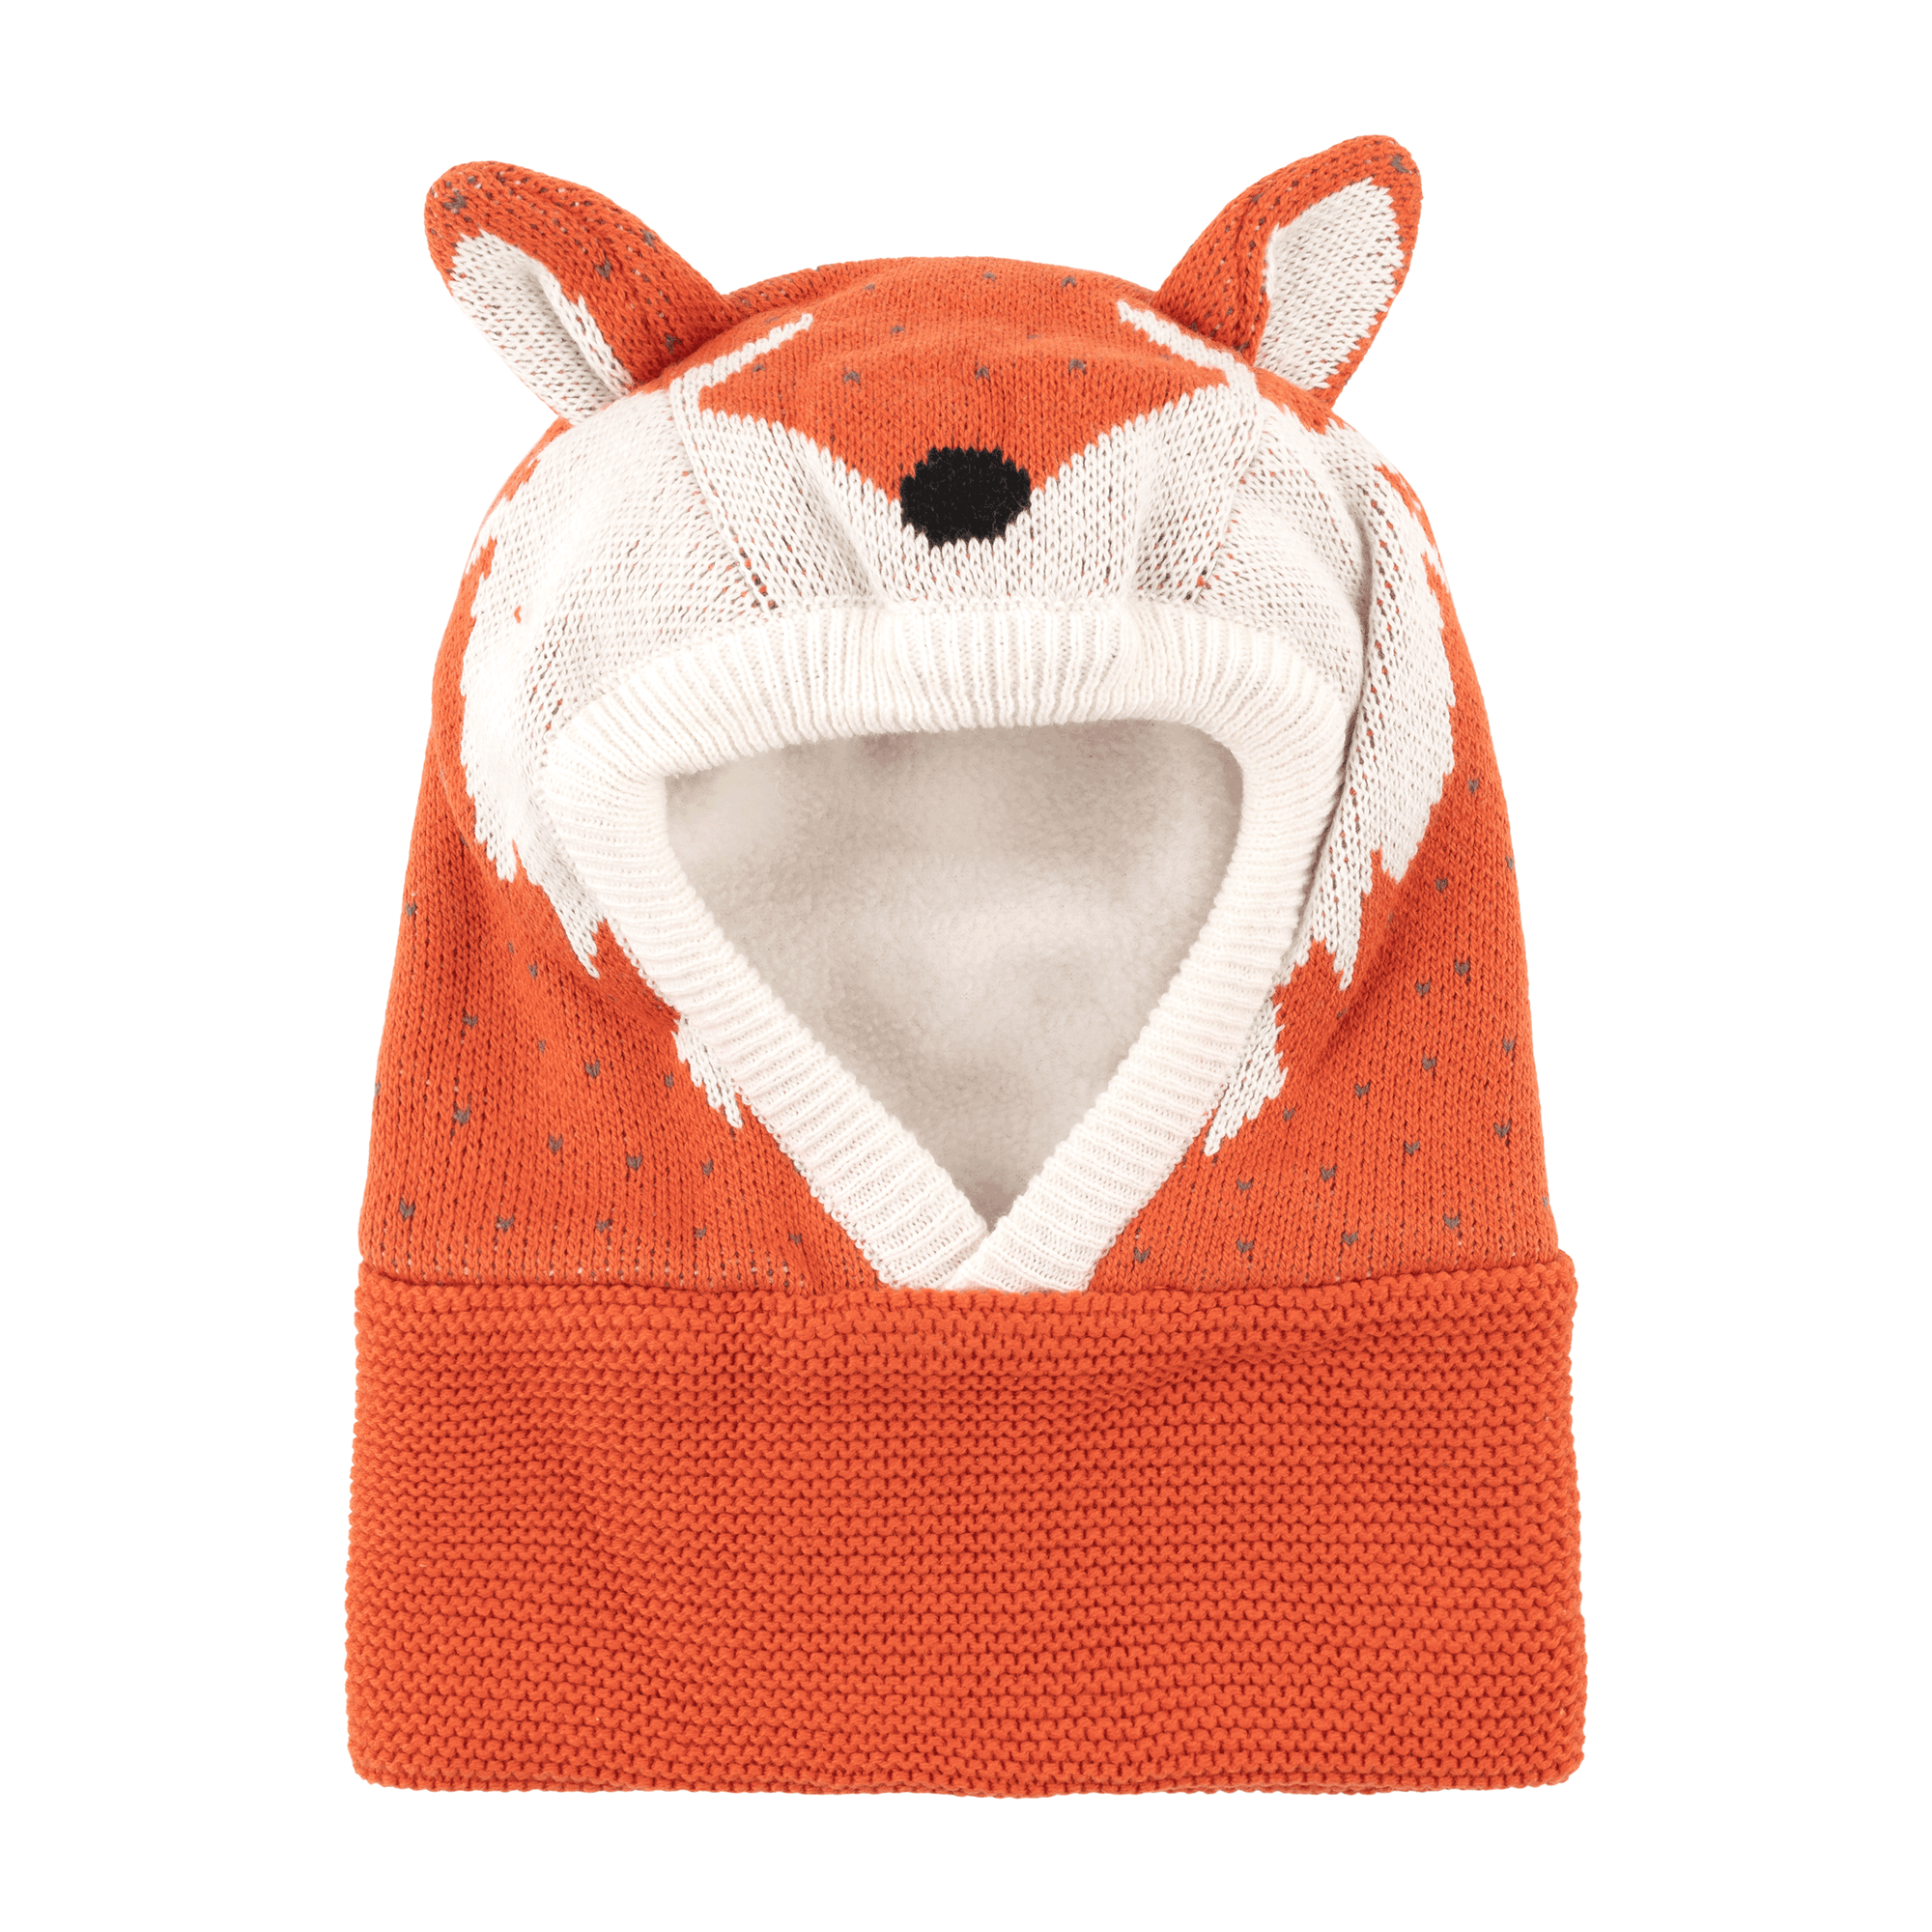 ZOOCCHINI Baby/Toddler Knit Balaclava Hat - Finley the Fox